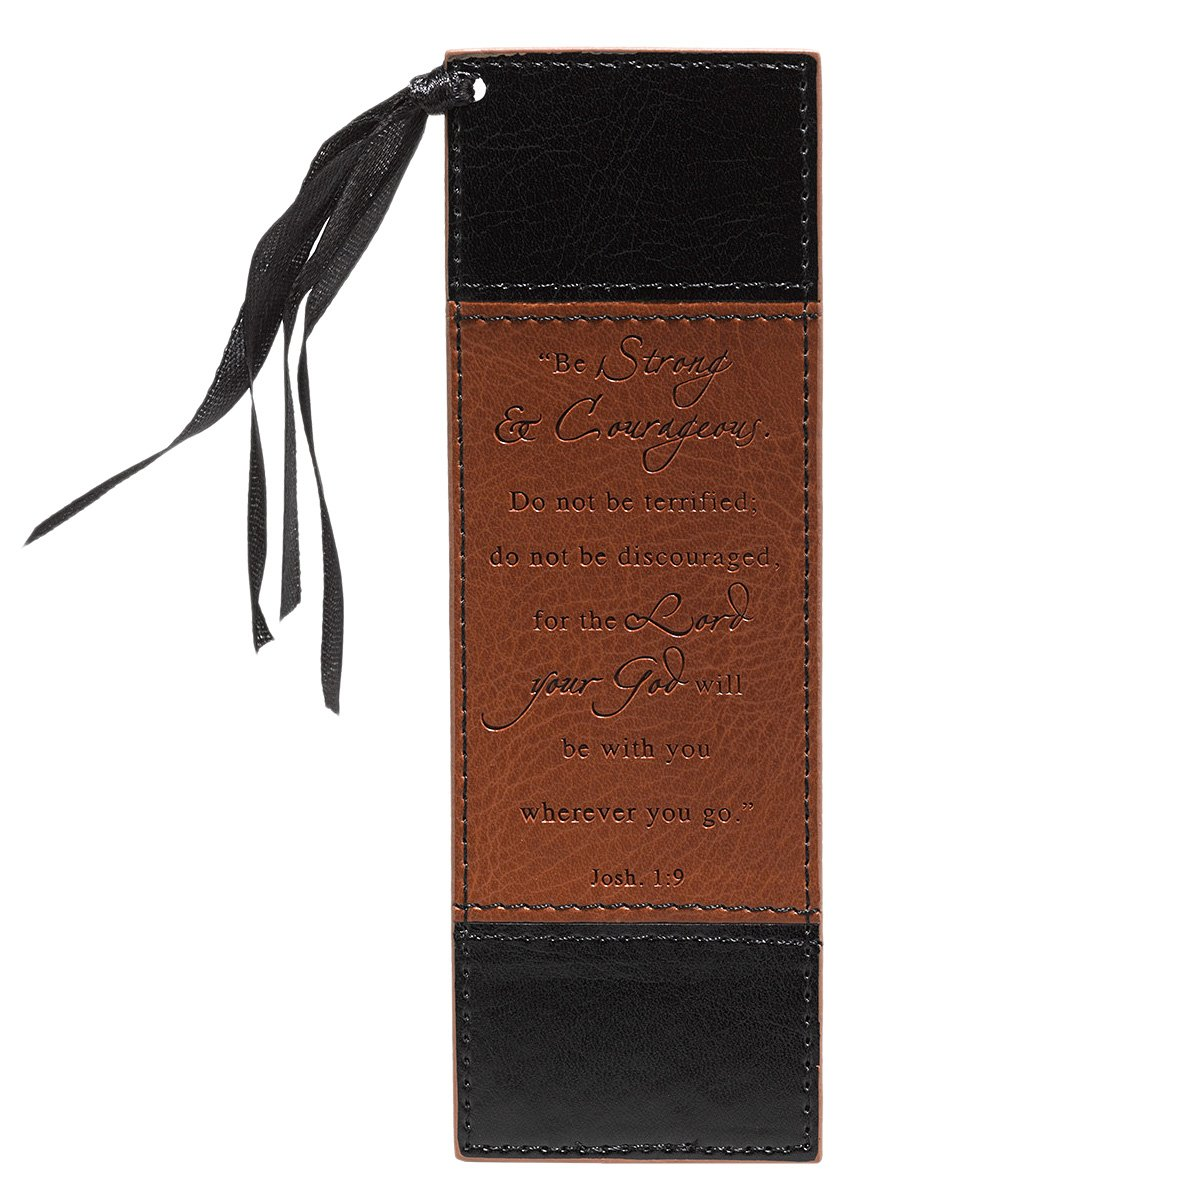 Strong & Courageous Two-Tone Faux Leather Pagemarker / Bookmark - Joshua 1:9 PDF